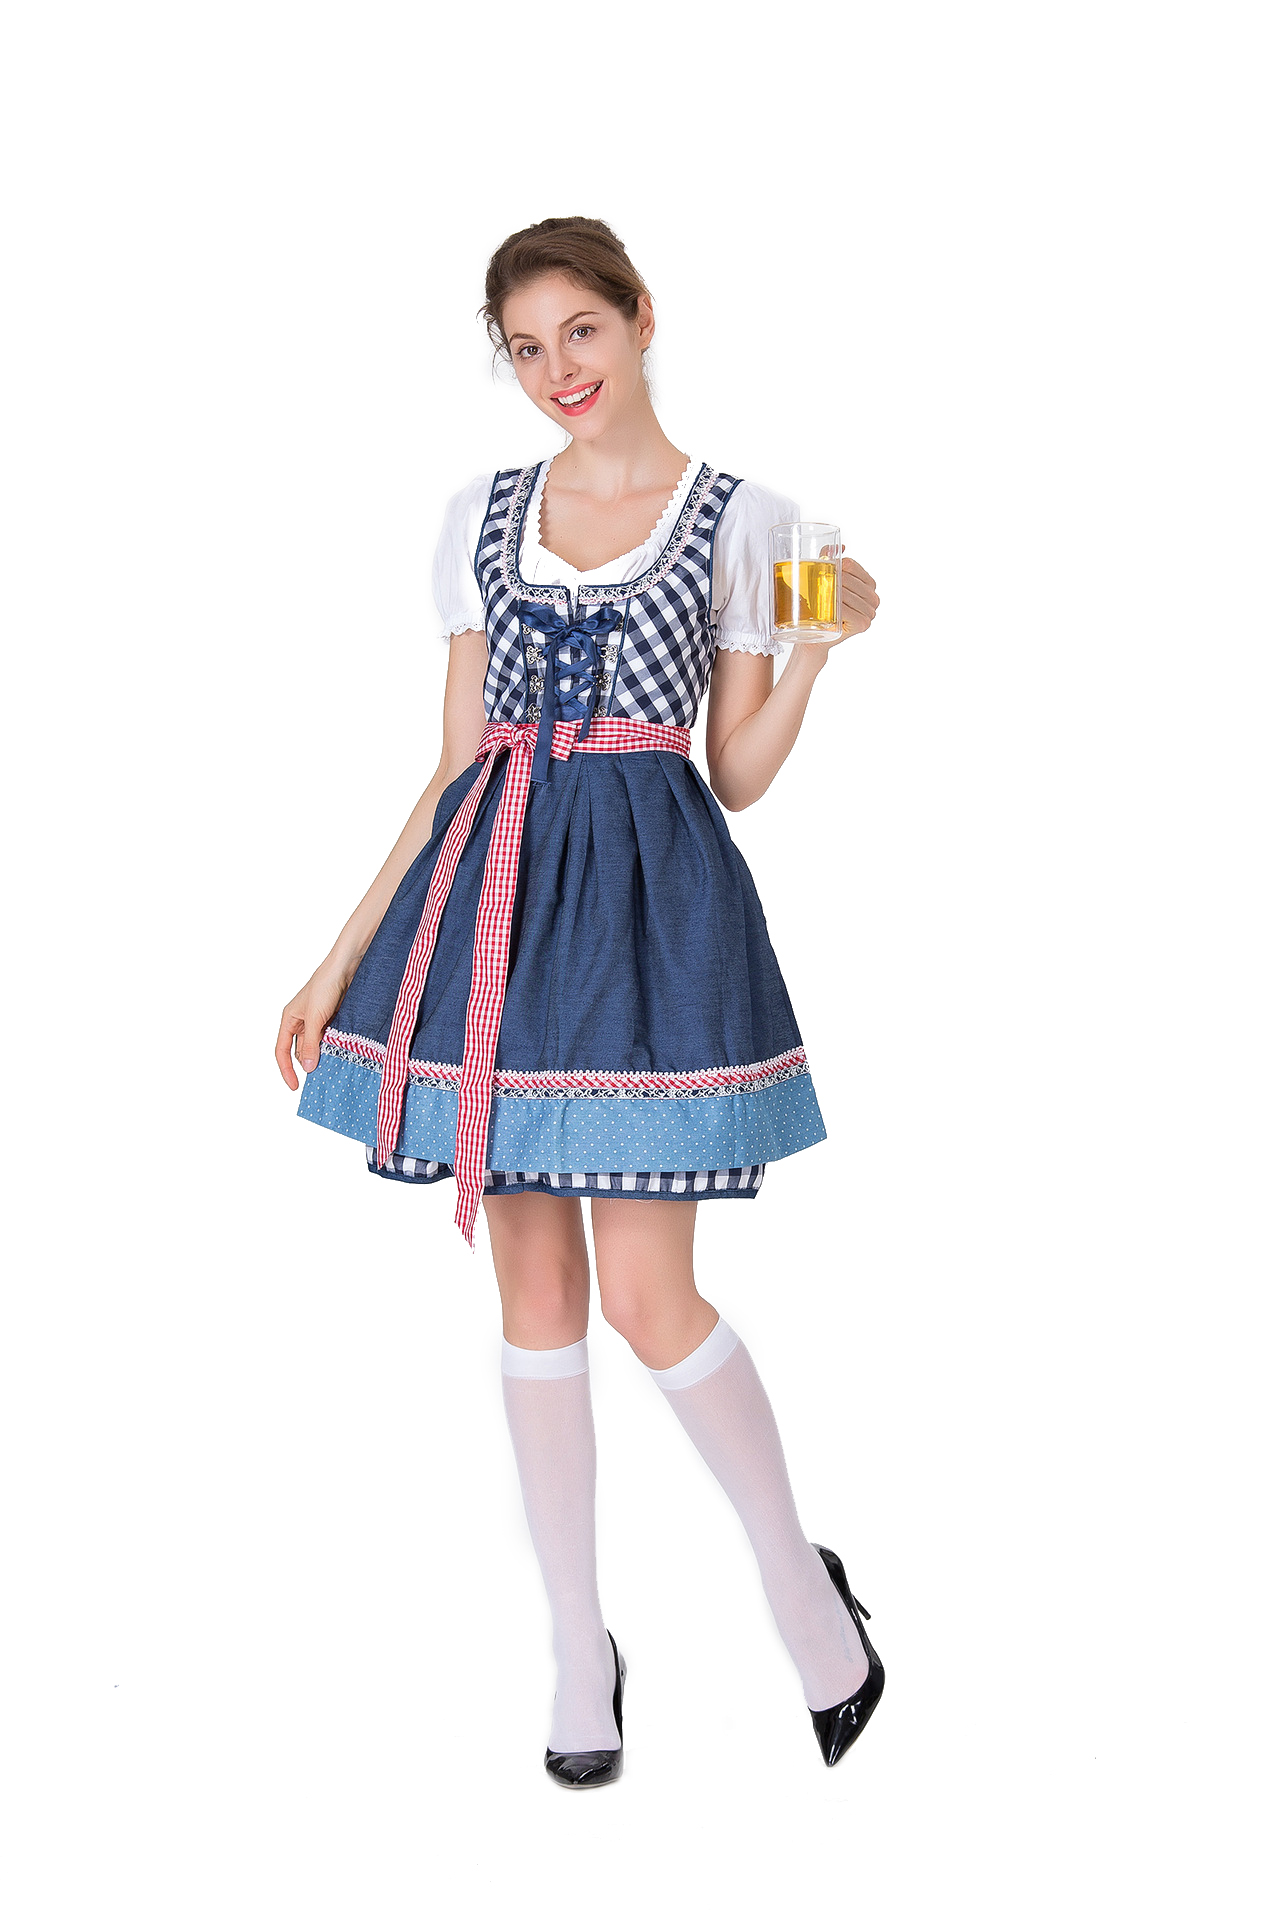 Women Dirndl Plaid Pattern Bavaria Style Uniform Oktoberfest Costume Beer Festival Dress blue_L